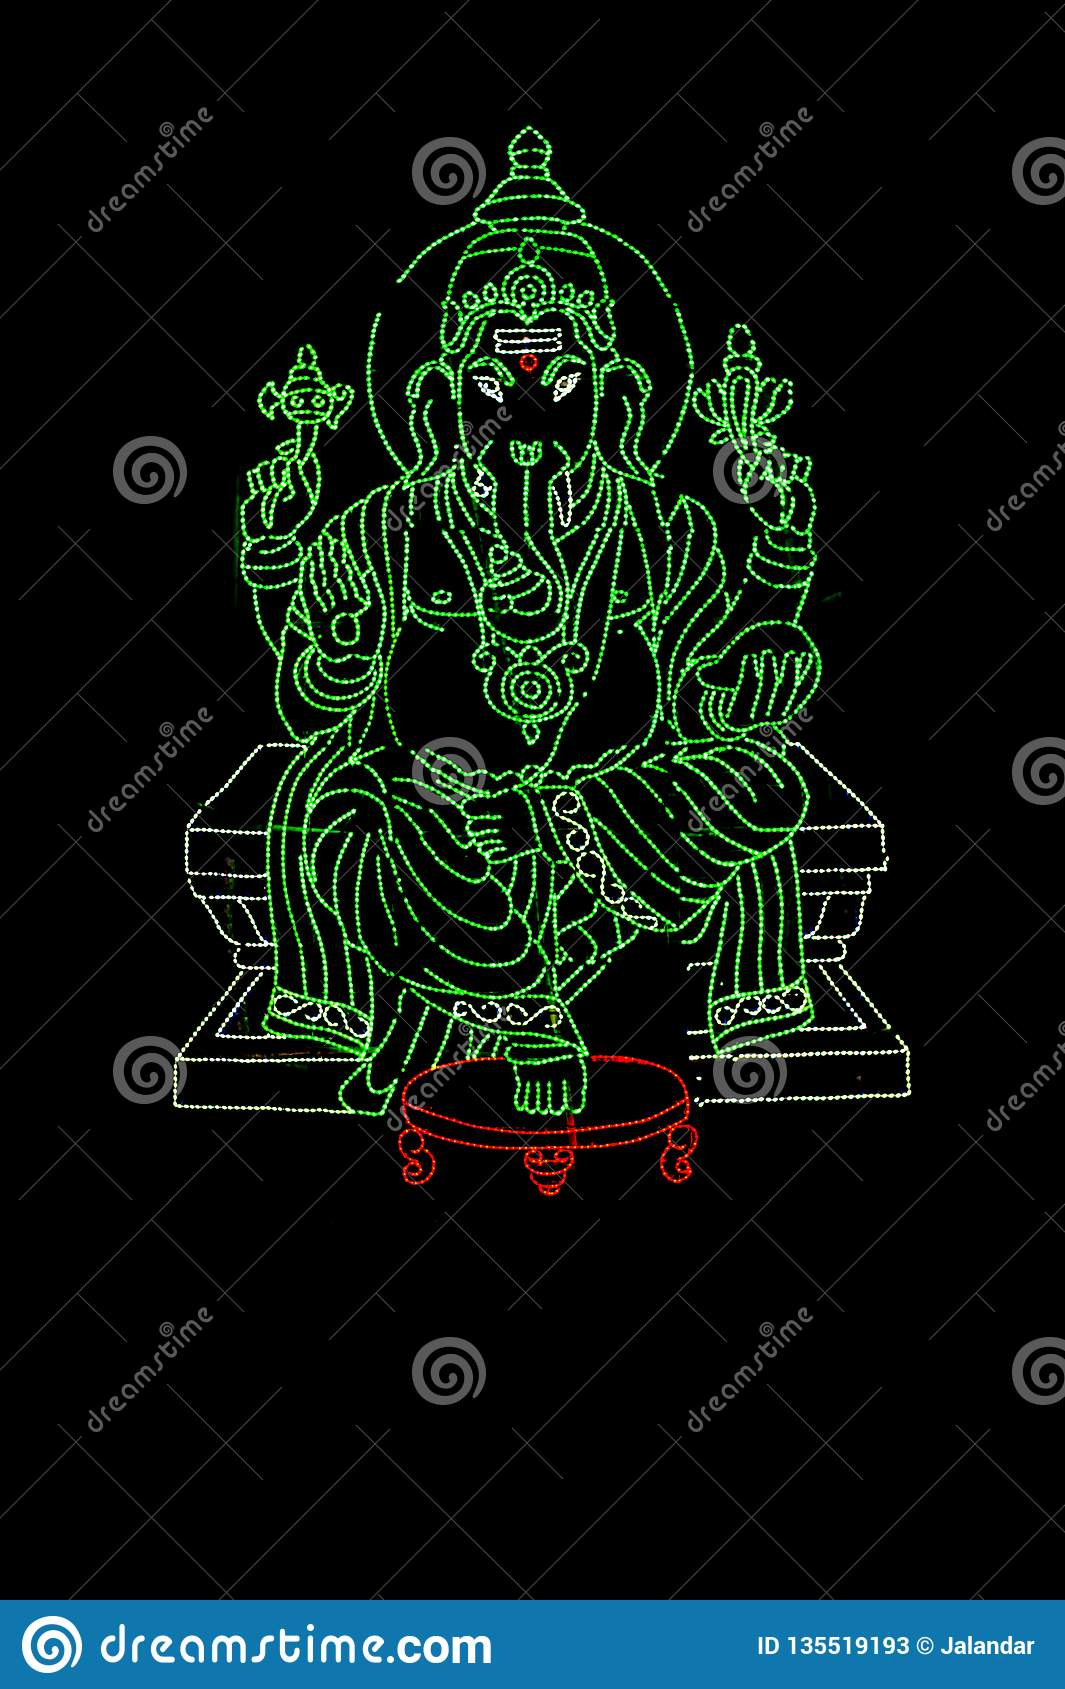 Lord Ganesha displayed in series of Green LED Lights